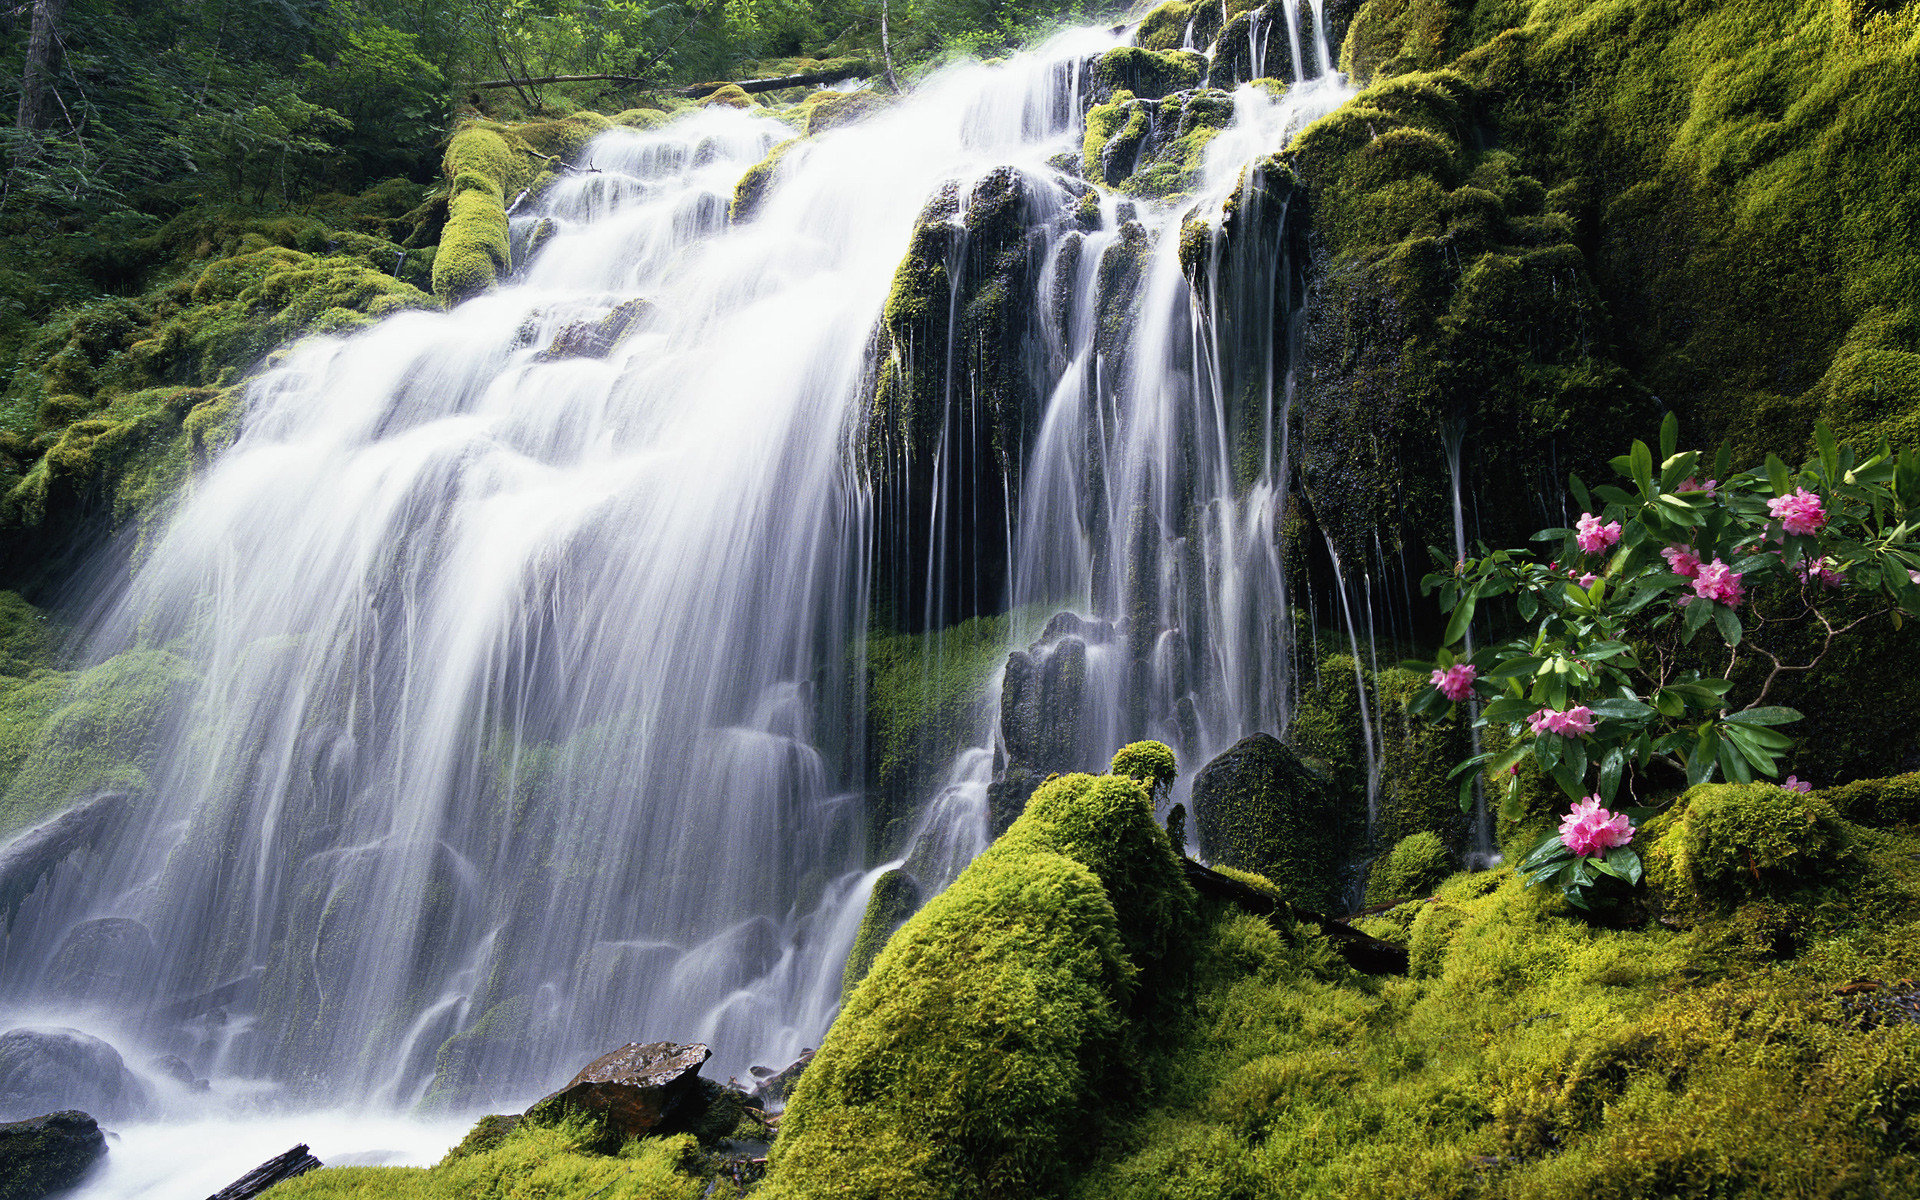 1920x1200 Beautiful Jungle Waterfall Desktop Wallpaper Uploaded by SalahAhmed